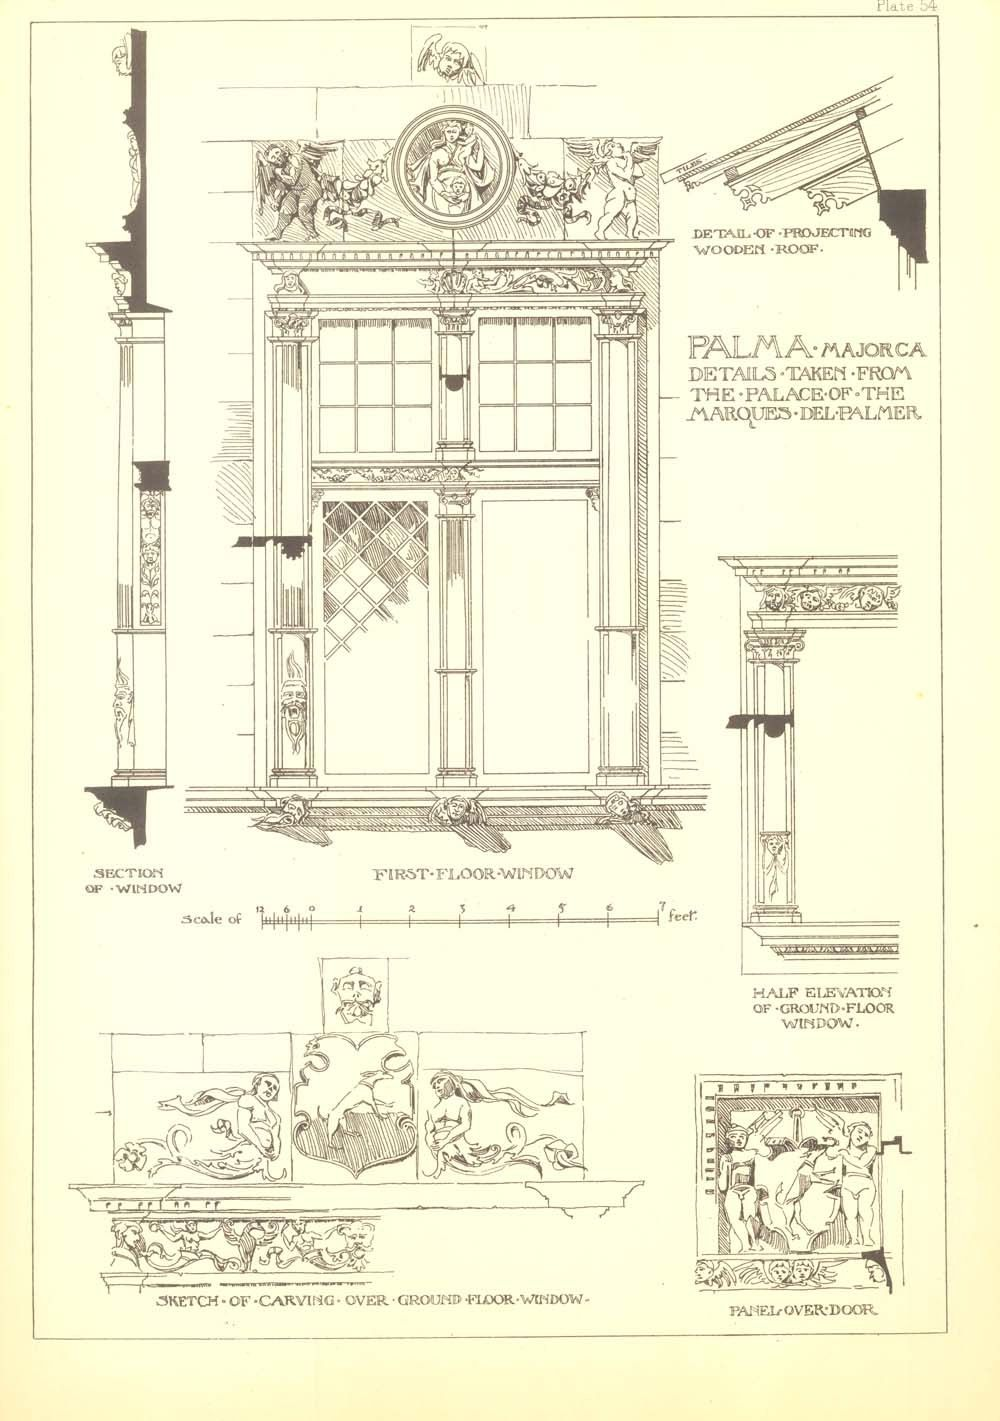 vintage window drawing. architectural details drawing andrew n prentice vintage print, spanish renaissance architecture, palma majorca, window